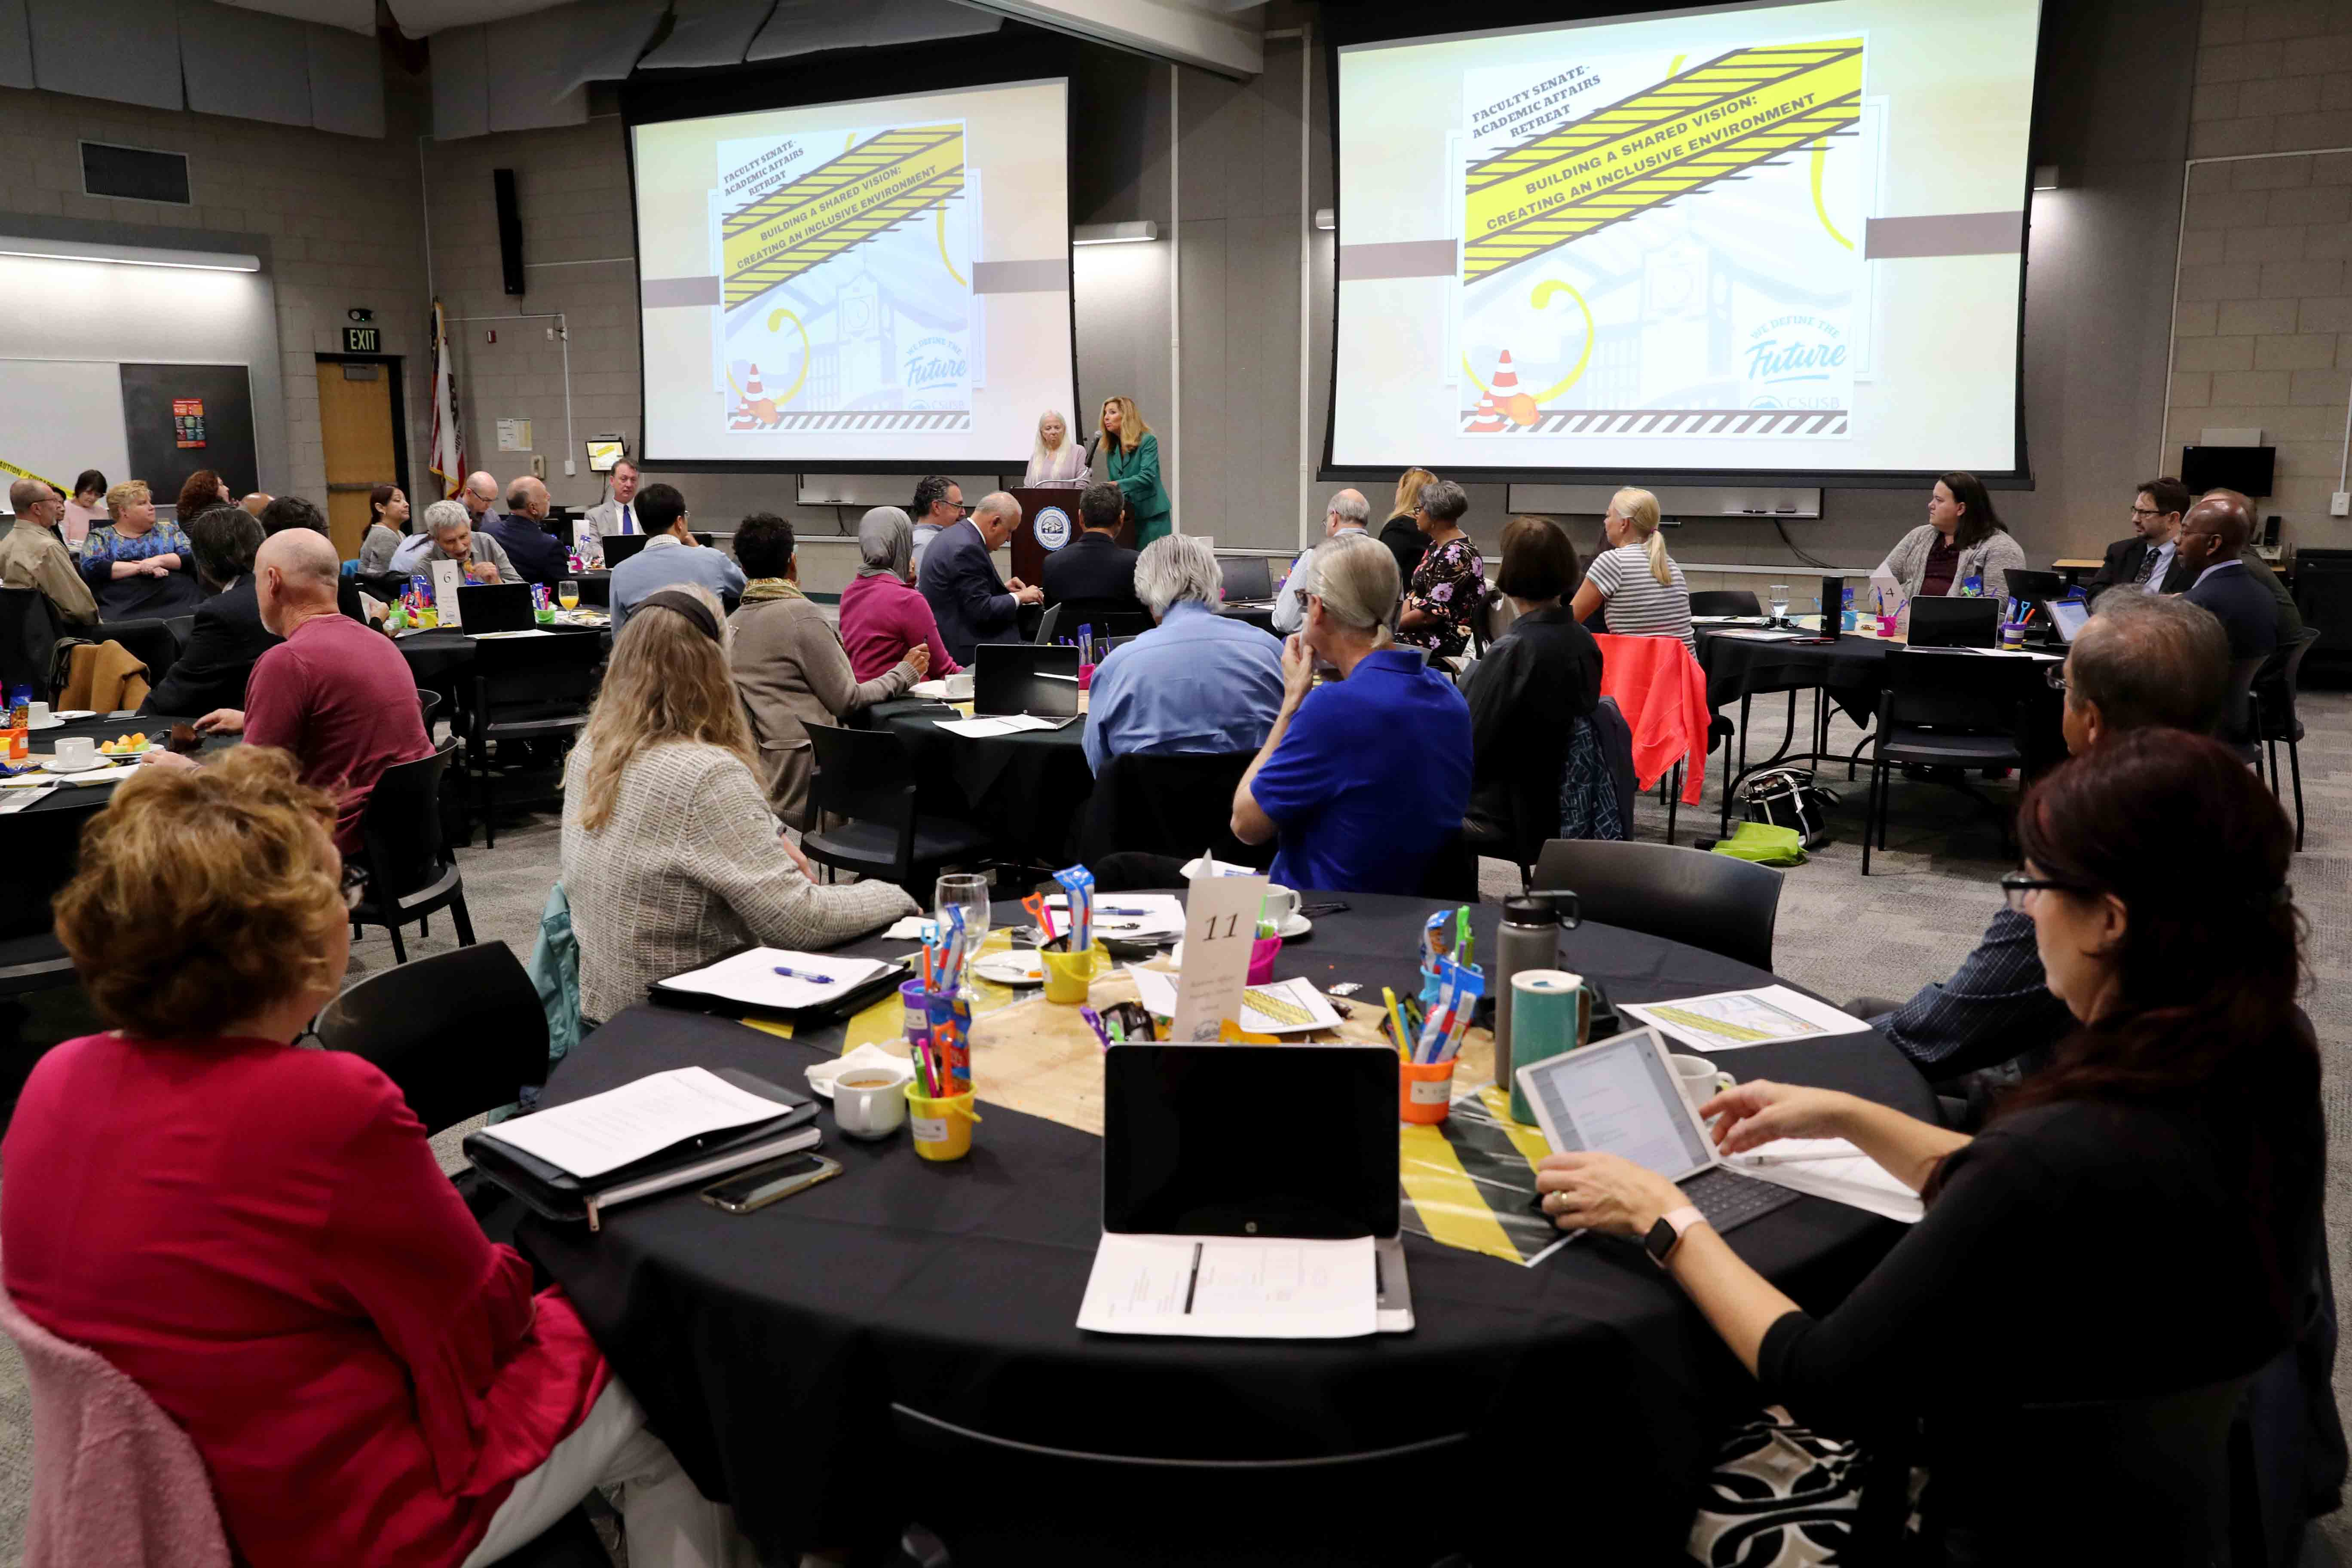 """""""Building a Shared Vision: Creating an Inclusive Environment"""" featured presentations on equity gaps on campus, ways to close the gaps as well as roundtable discussions."""